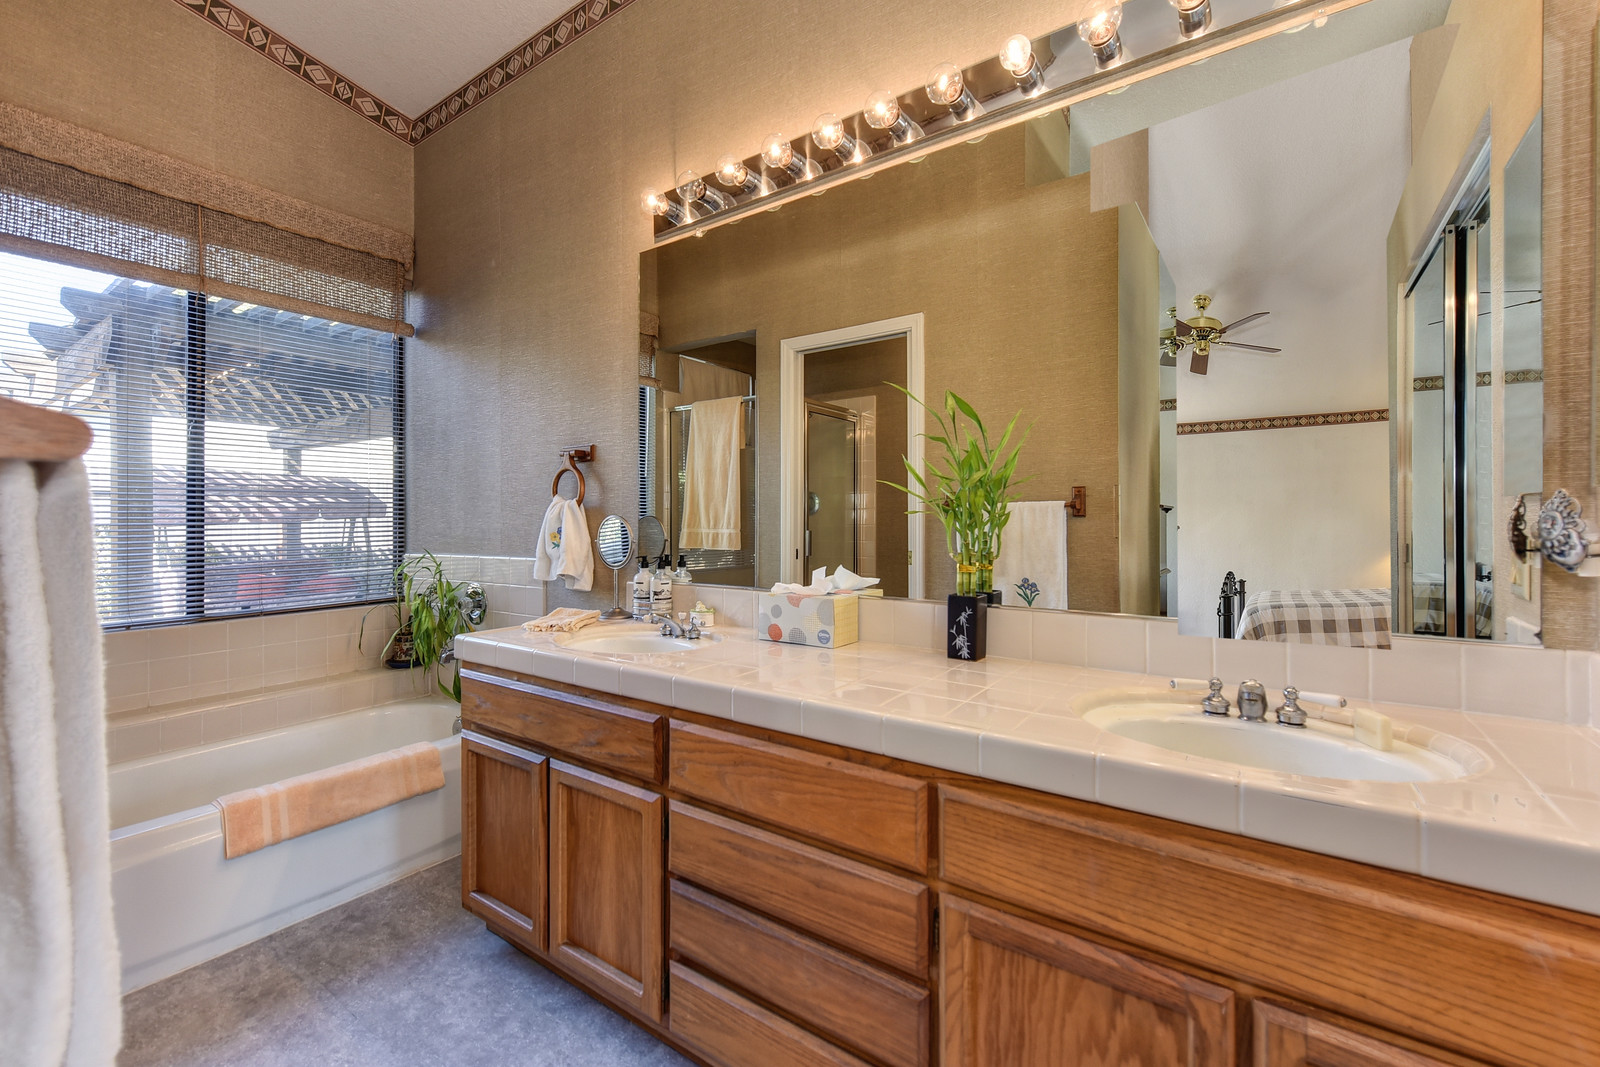 Master bathroom at 9158 Old Creek Rd | Elk Grove California | Sold above list price with multiple offers